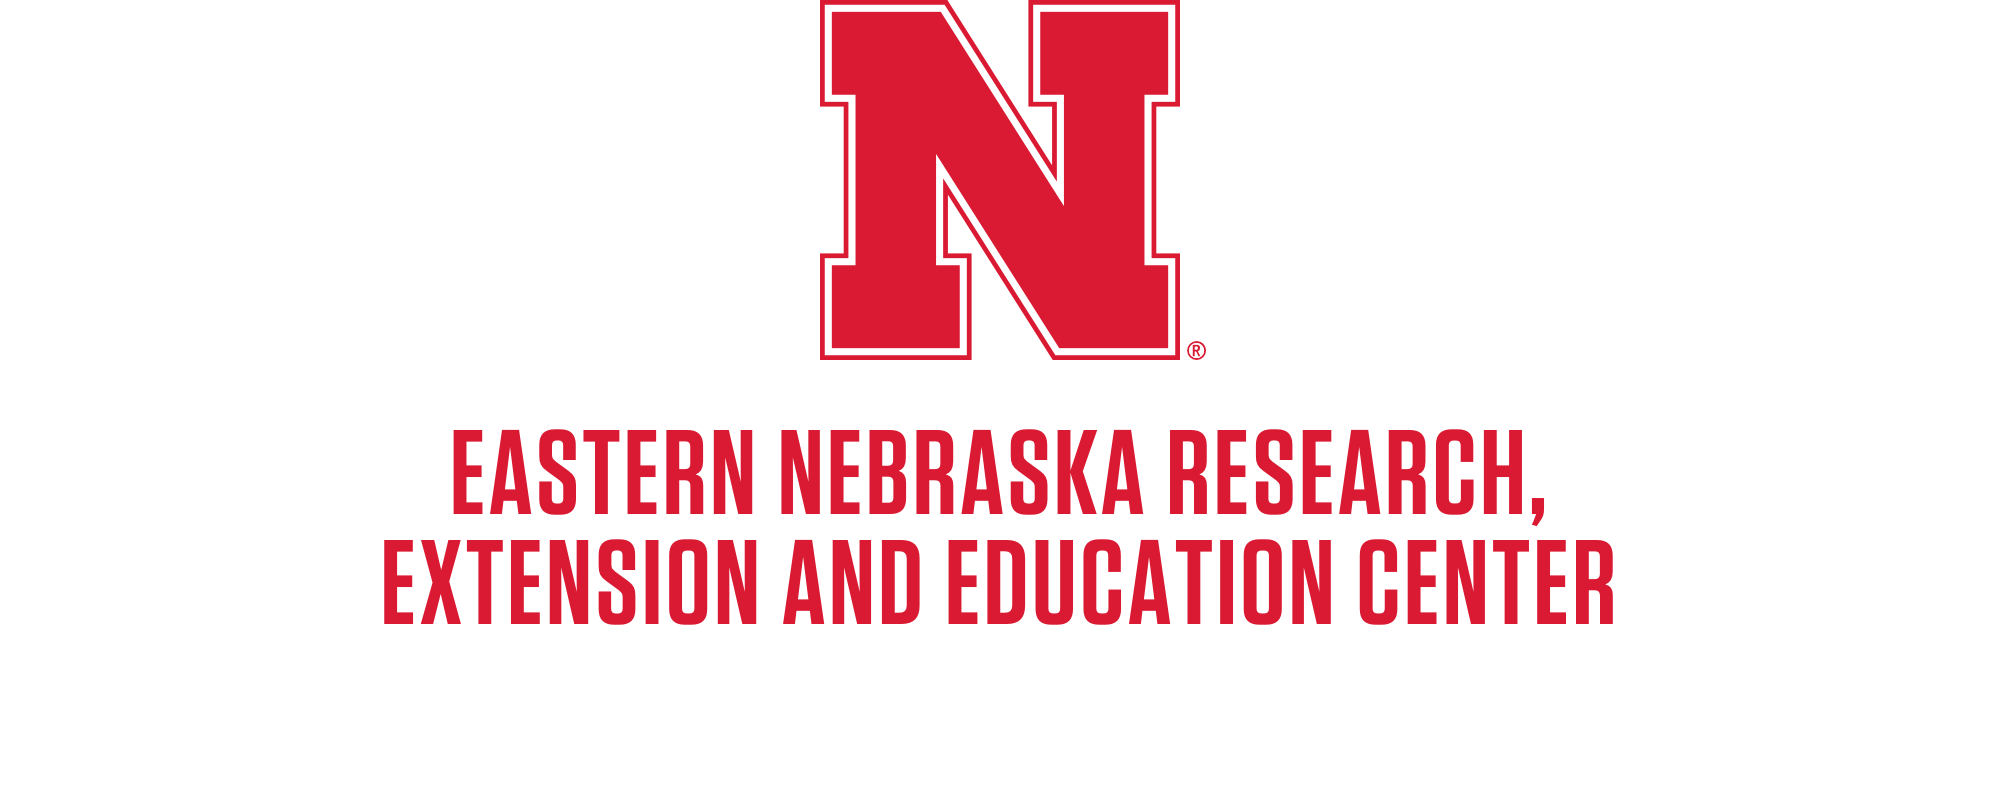 Eastern Nebraska Research and Extension Image